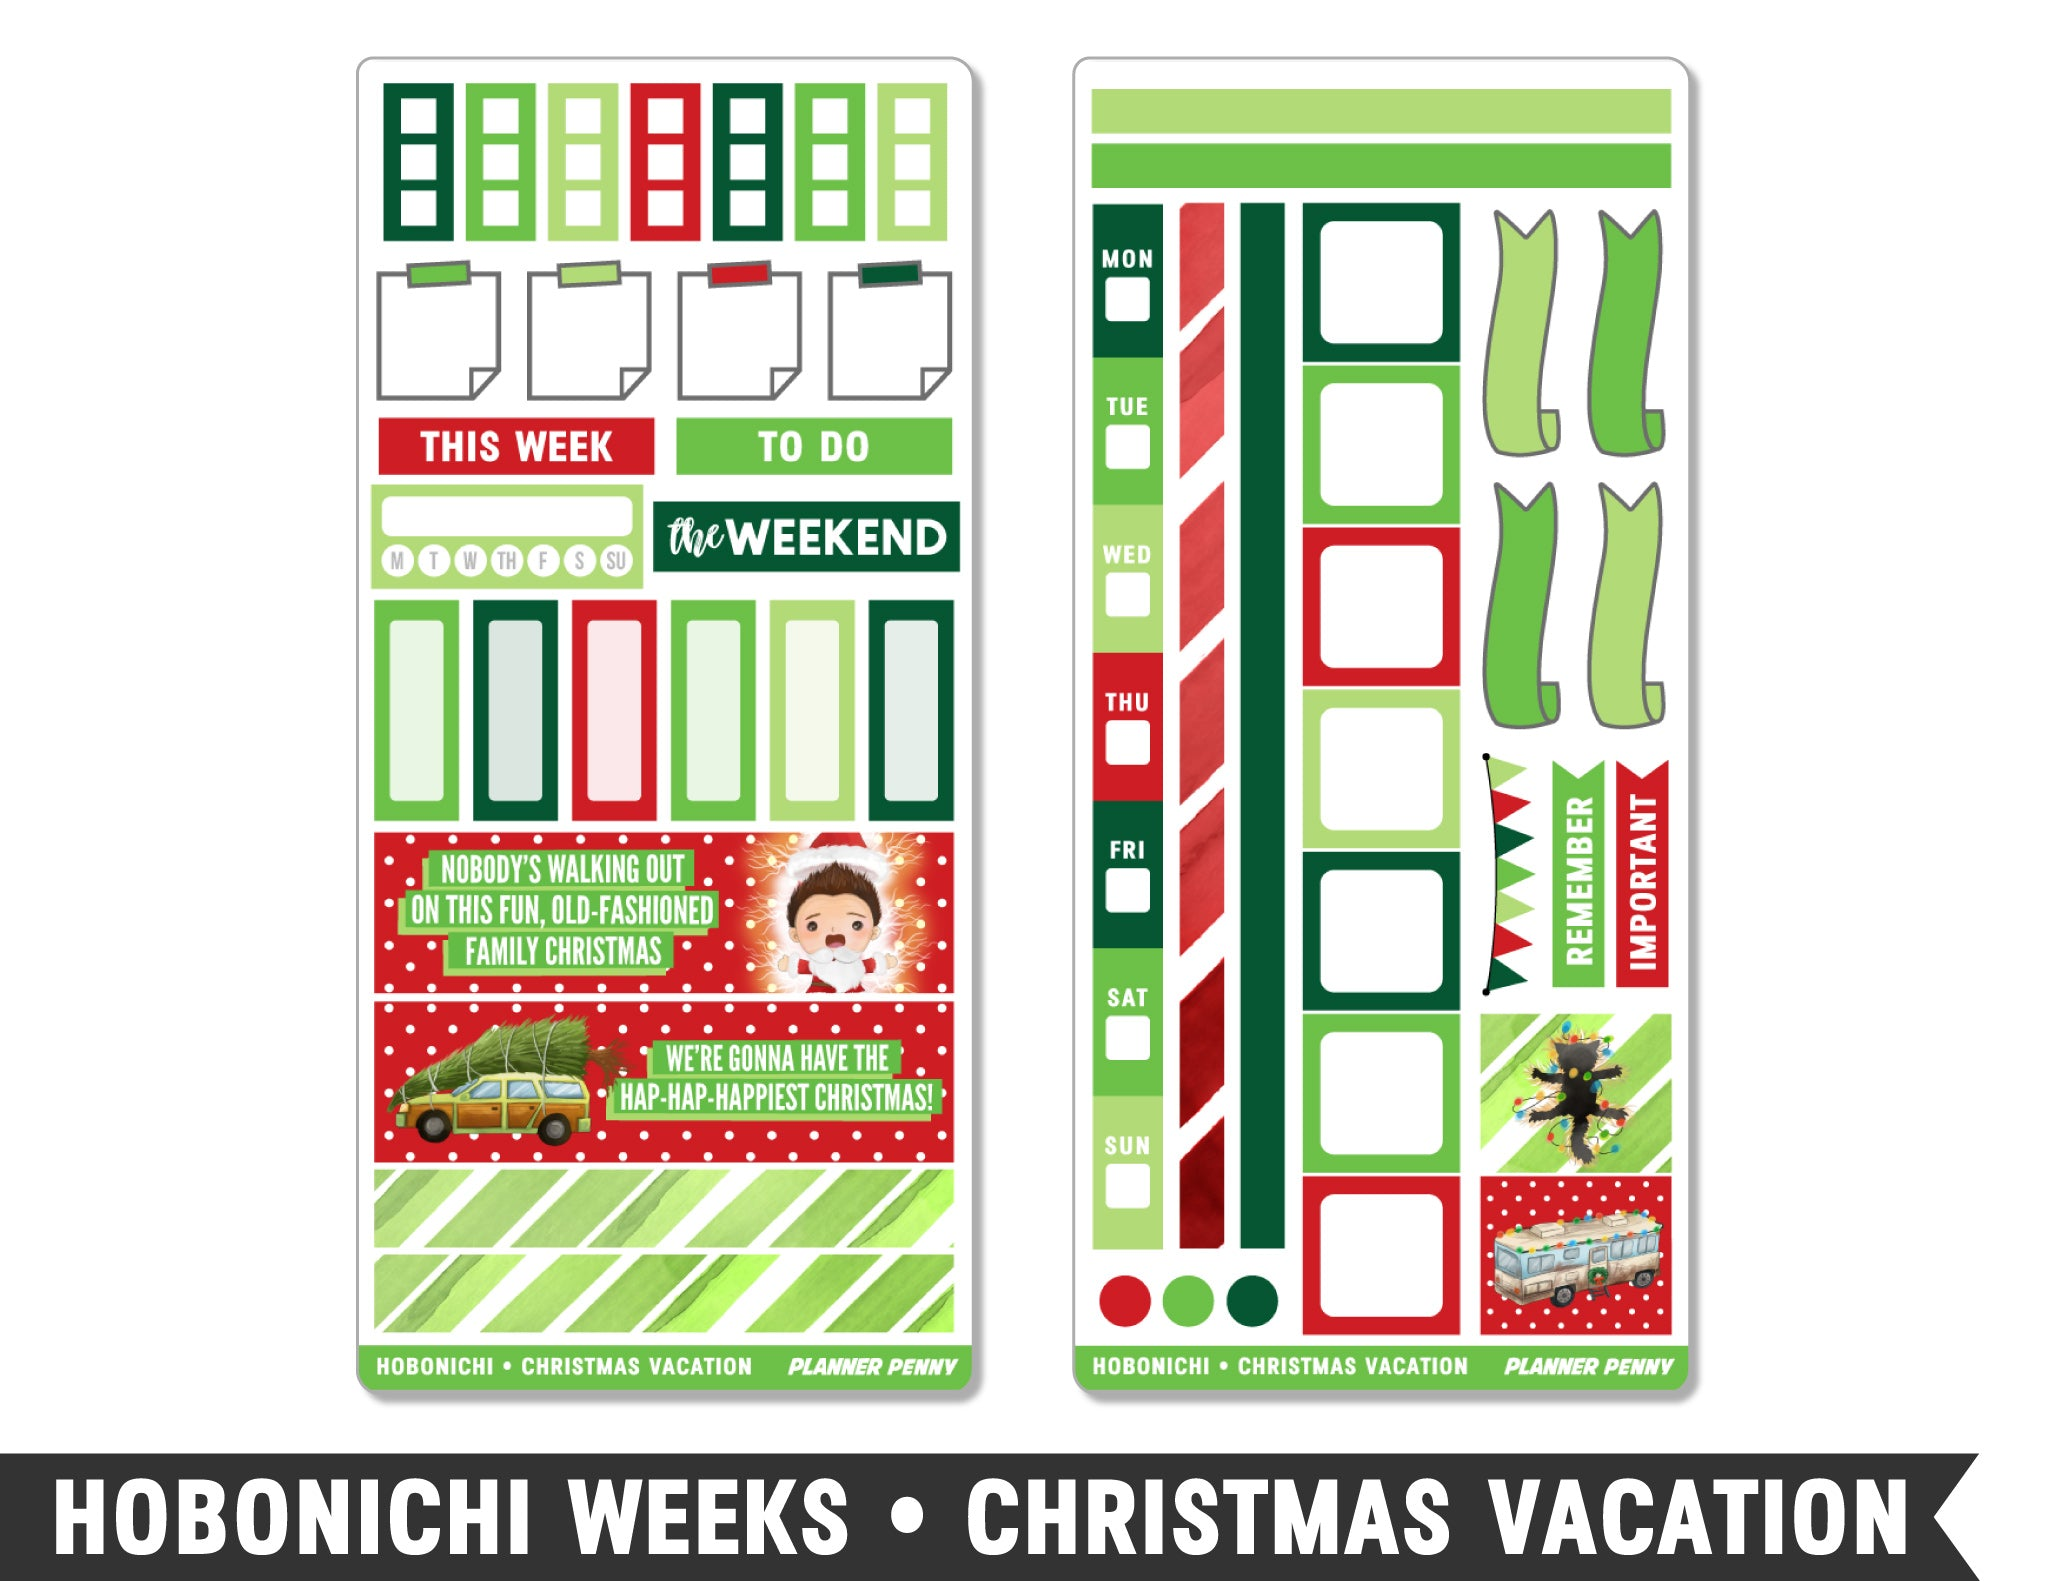 Hobonichi Weeks • Christmas Vacation • Weekly Spread Planner Stickers - Planner Penny